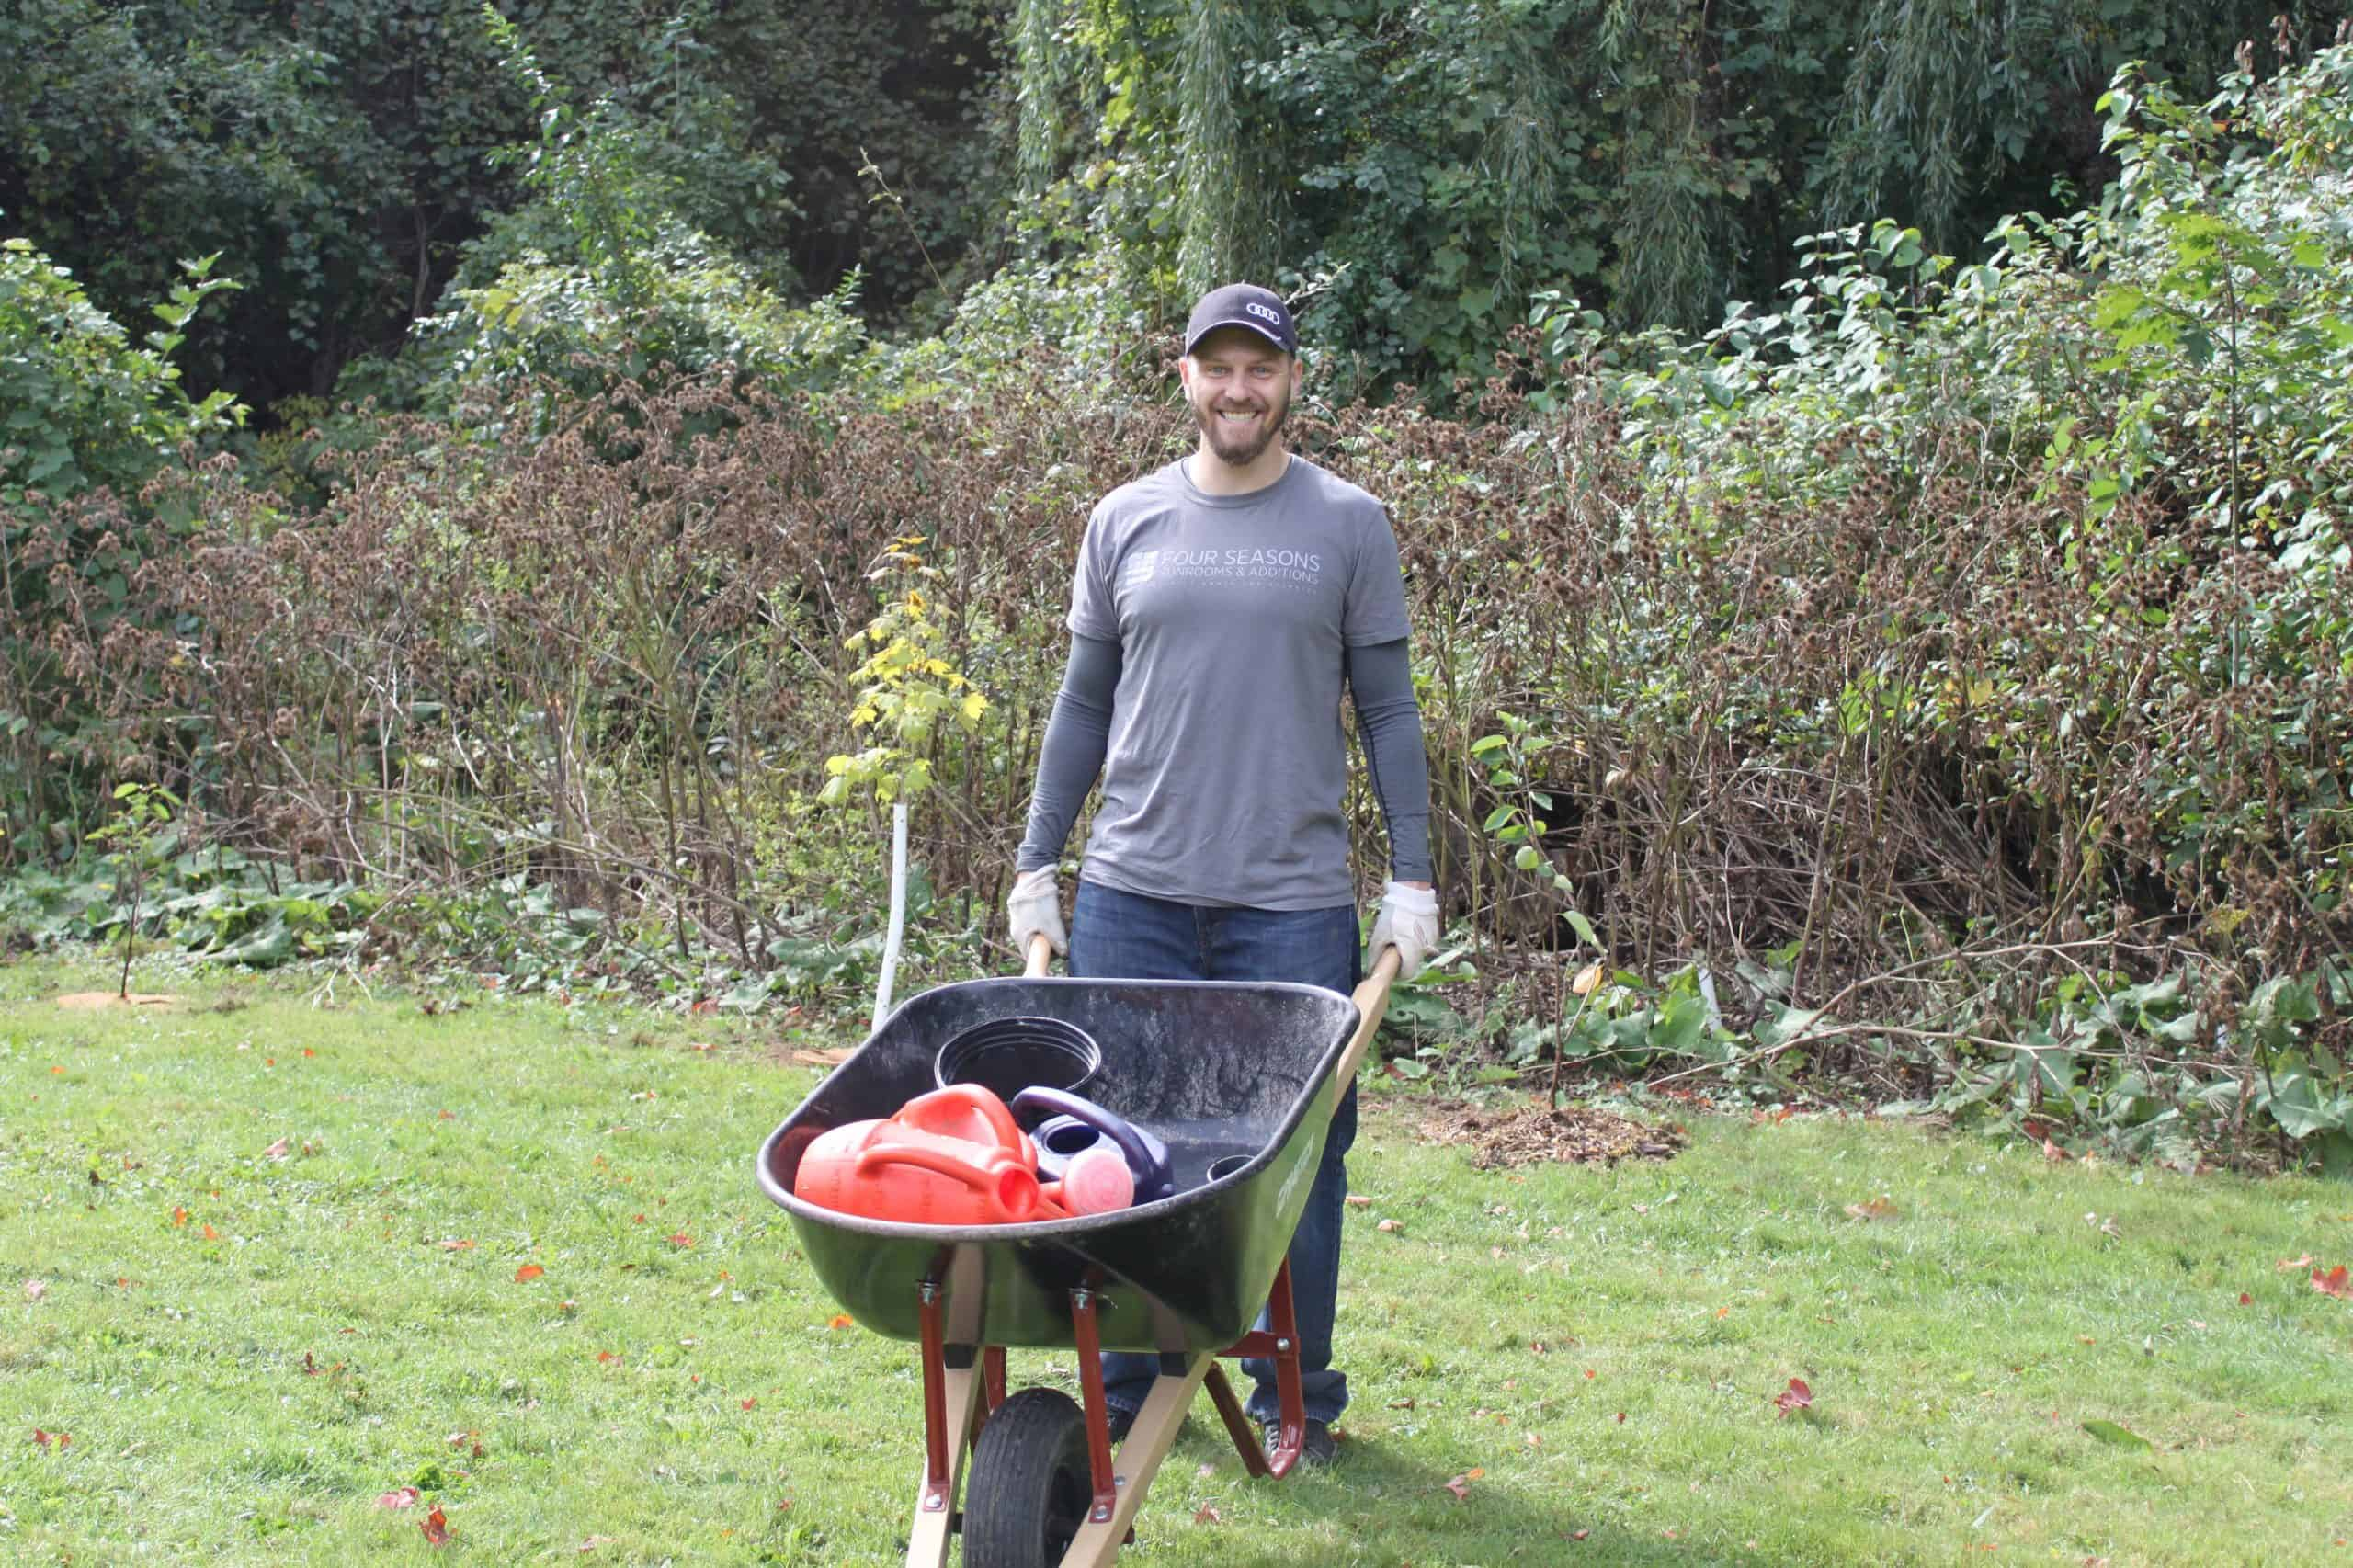 a person holding a wheelbarrow smiling at the camera